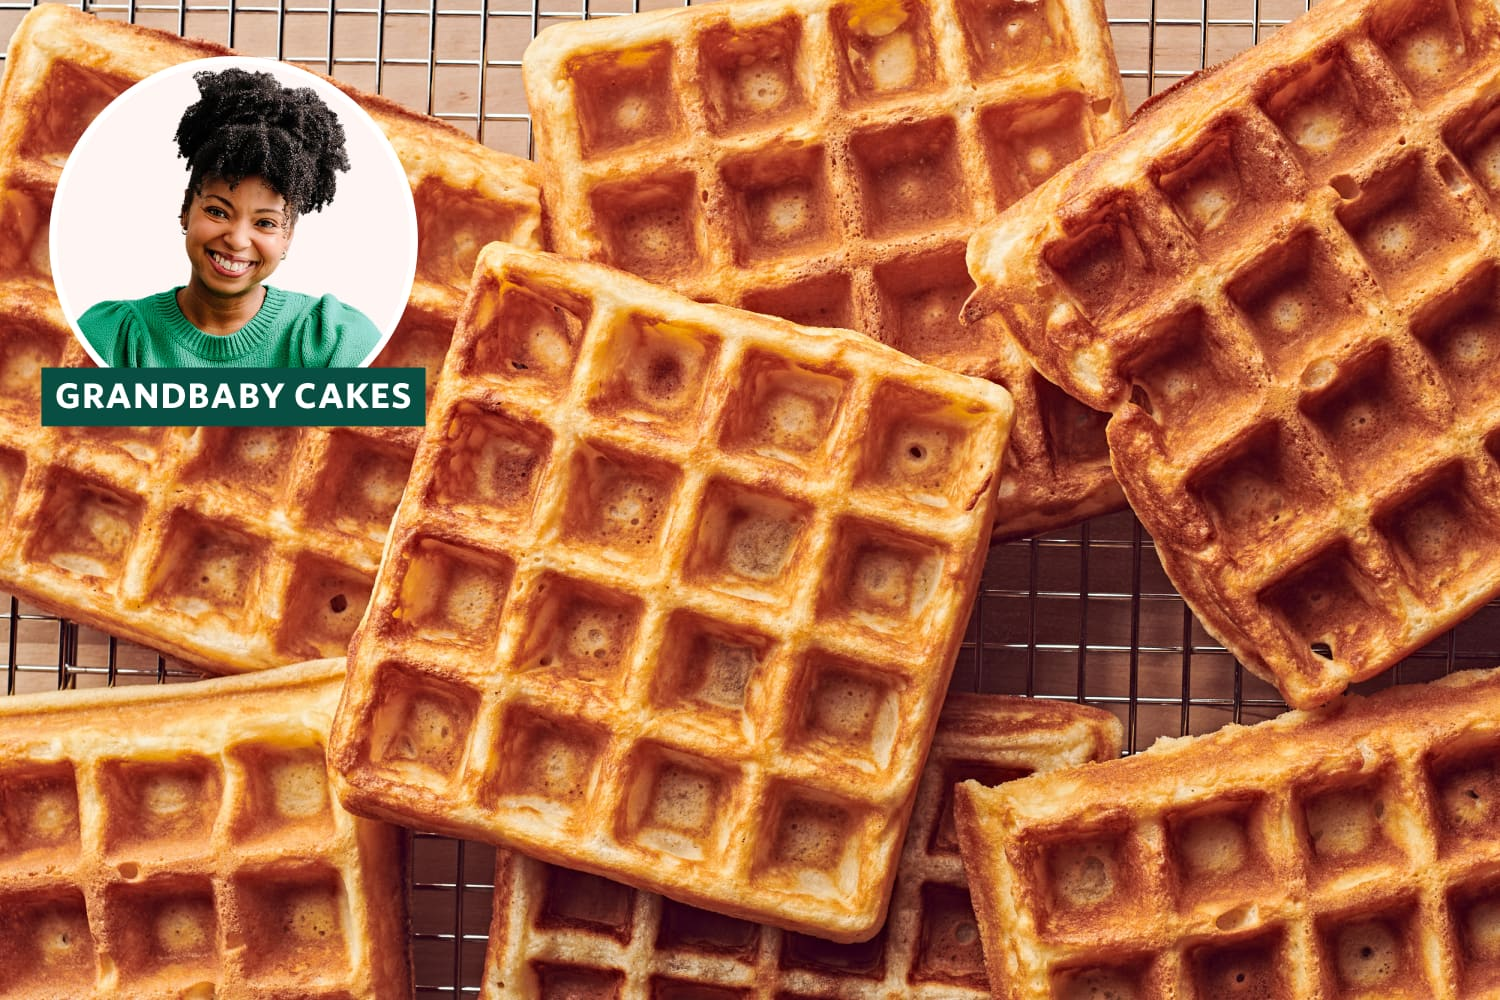 I Tried the Trick for the Lightest, Crispiest Waffles, and It Works Like a Charm